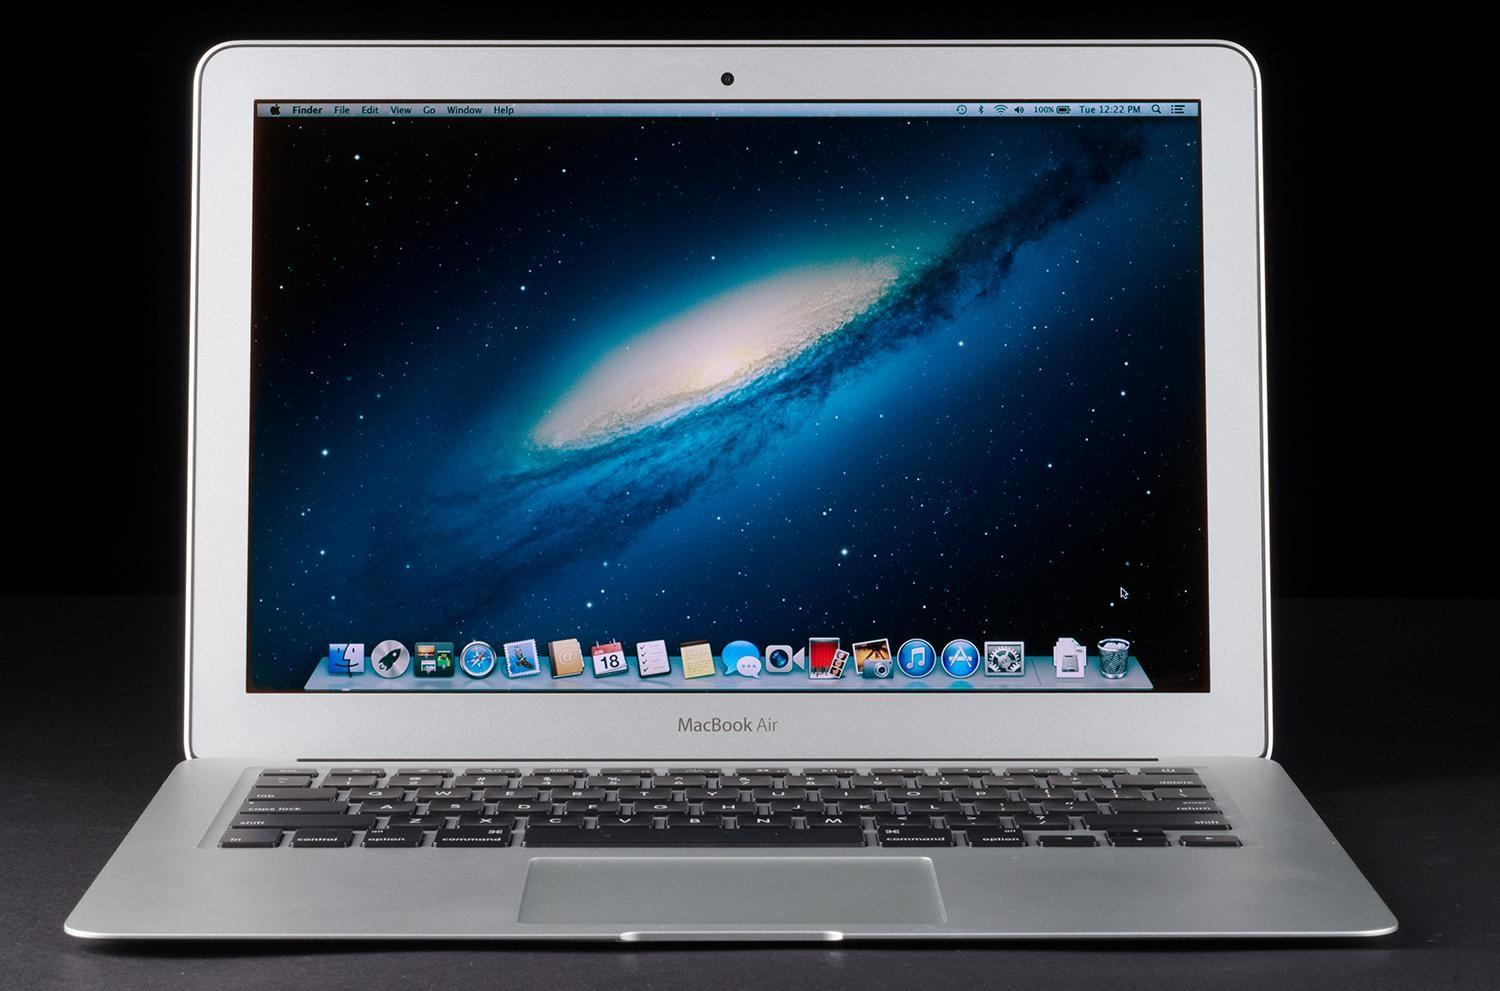 Apple Laptop Best Buy Cuts 13 Inch Macbook Air By 150 Now Costs 850